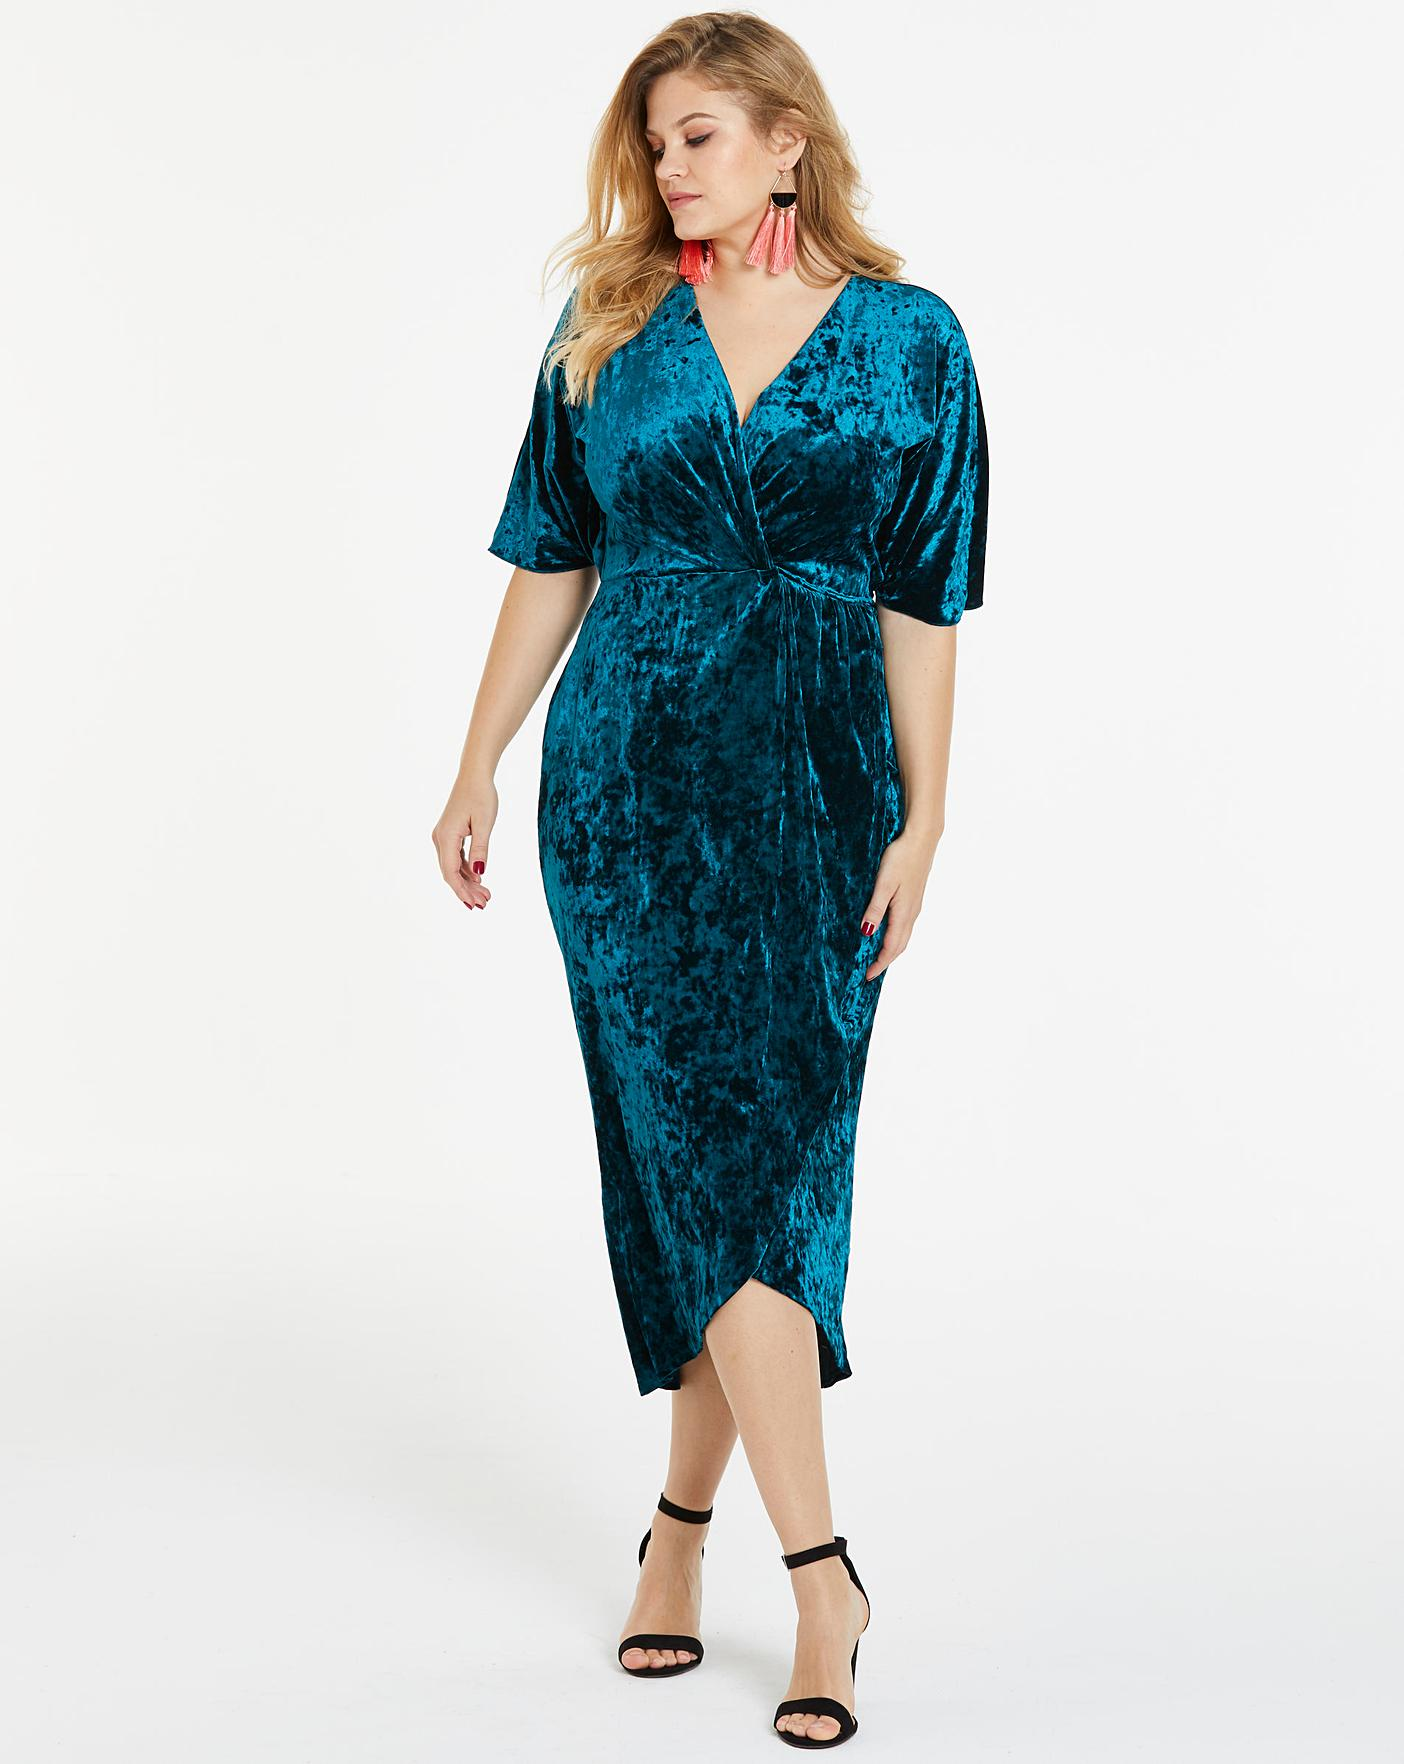 b3d31dae385 Joanna Hope Teal Velvet Maxi Dress | Simply Be